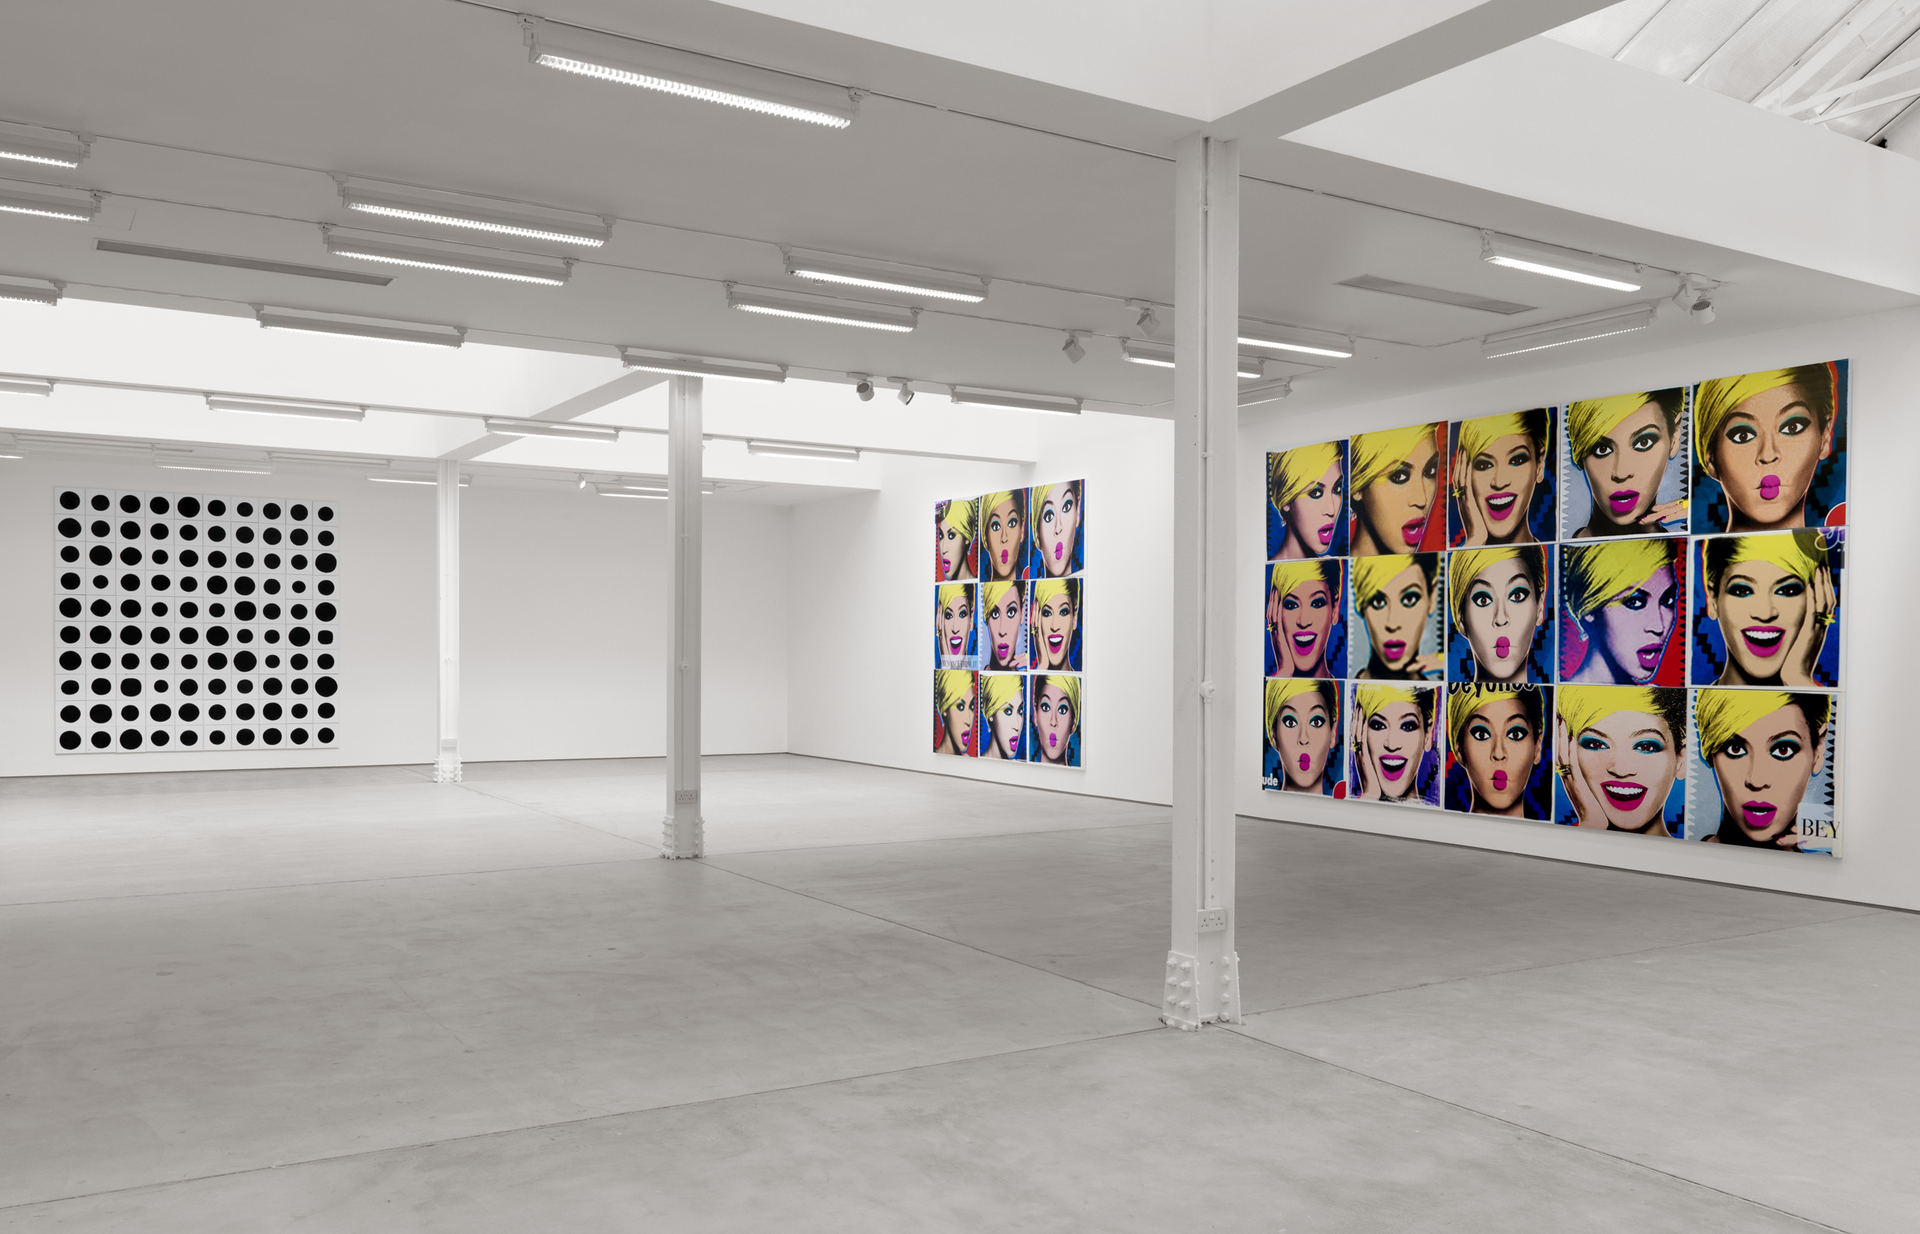 007_Installation view_Jonathan Horowitz_3048cm Paintings_SCHQ_Kingly St_26 March-30 May 2015